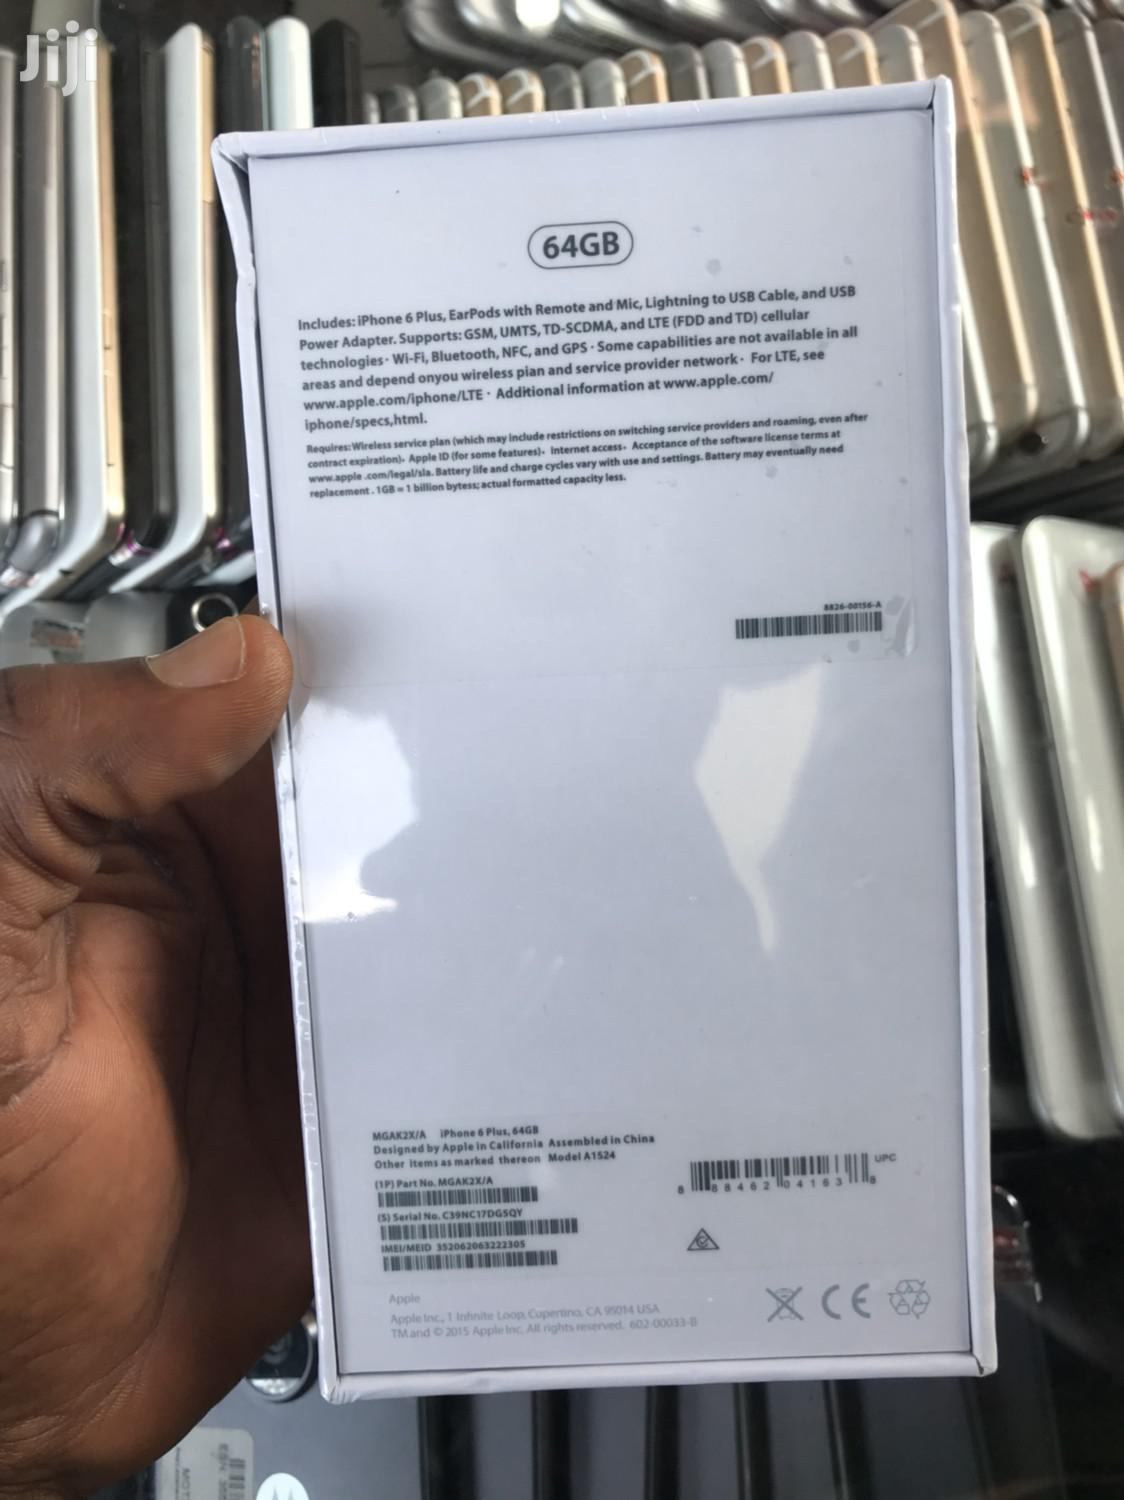 New Apple iPhone 6 64 GB | Mobile Phones for sale in Cantonments, Greater Accra, Ghana